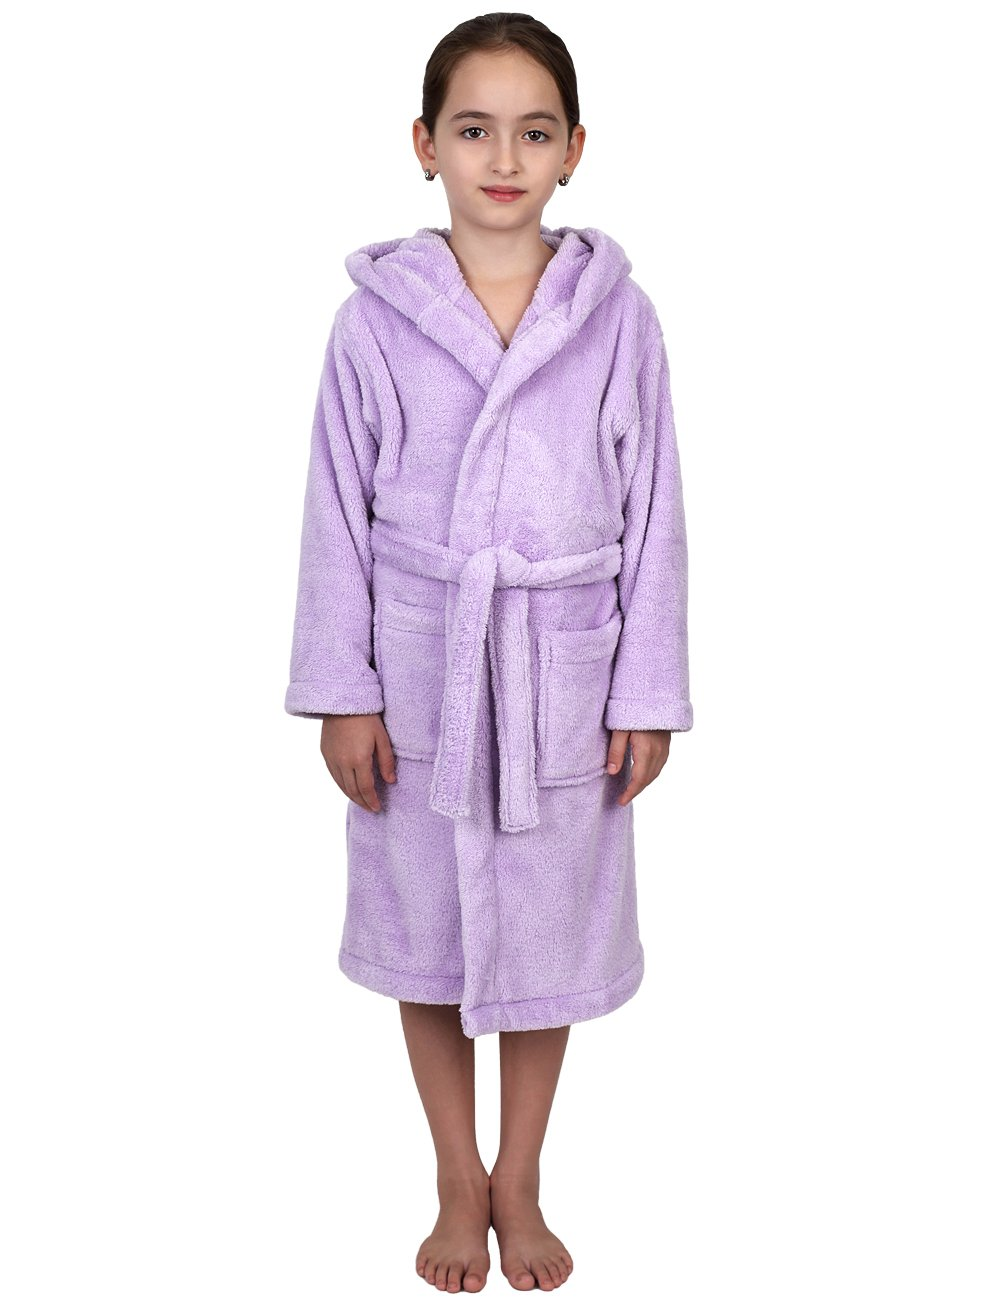 TowelSelections Big Girls' Robe, Kids Plush Hooded Fleece Bathrobe Size 12 Lavender